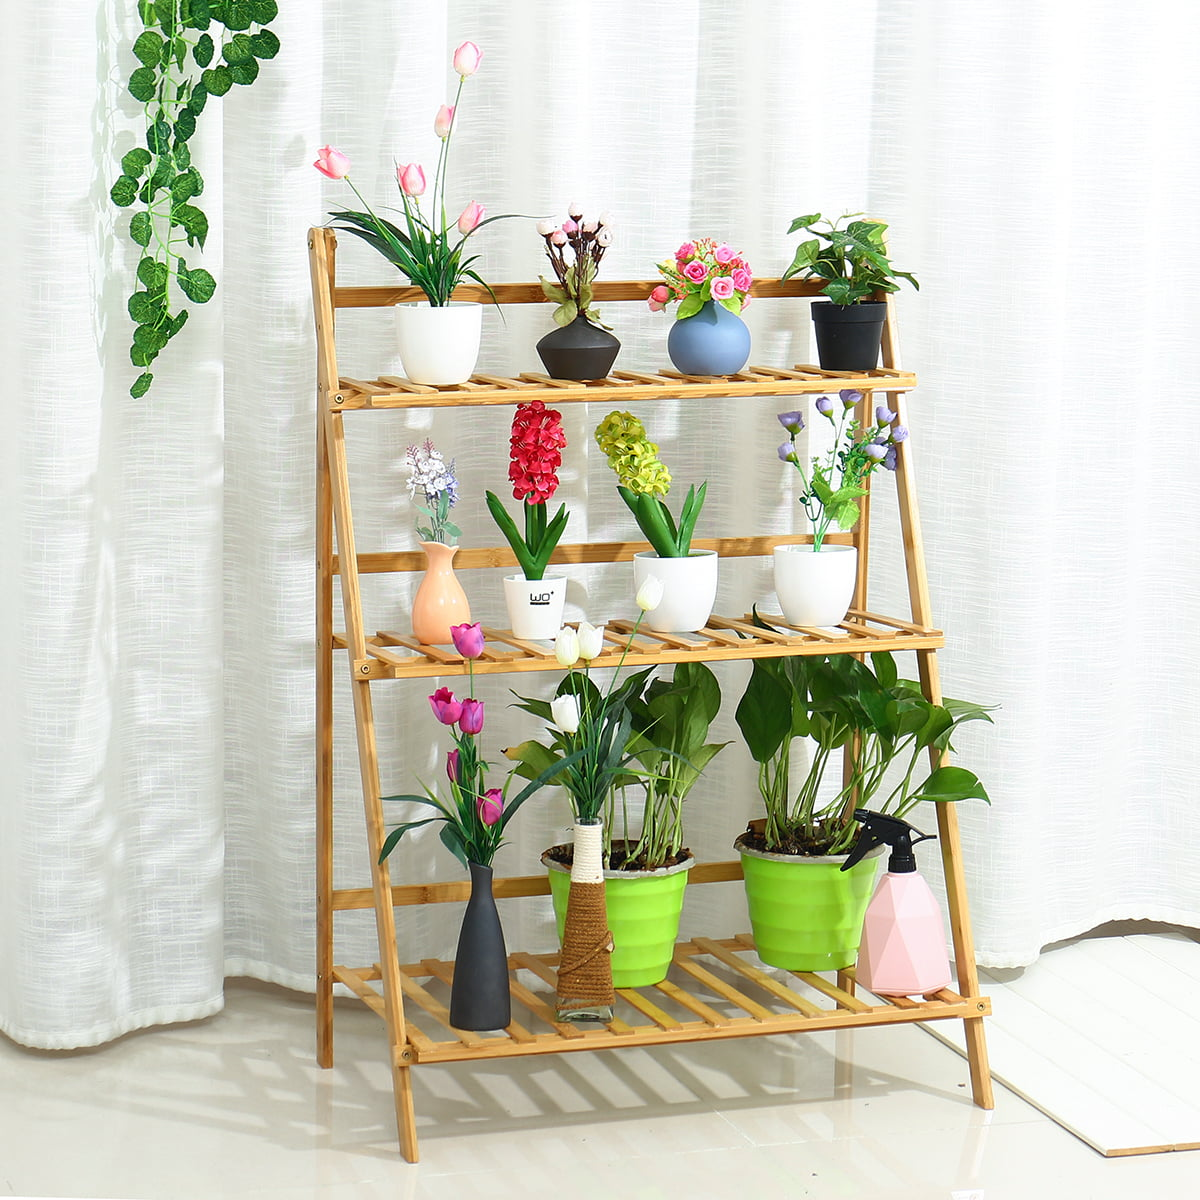 27.5Inch High 3 Tier Wood Hanging Folding Plant Shelf ... on Plant Stand Hanging  id=35810